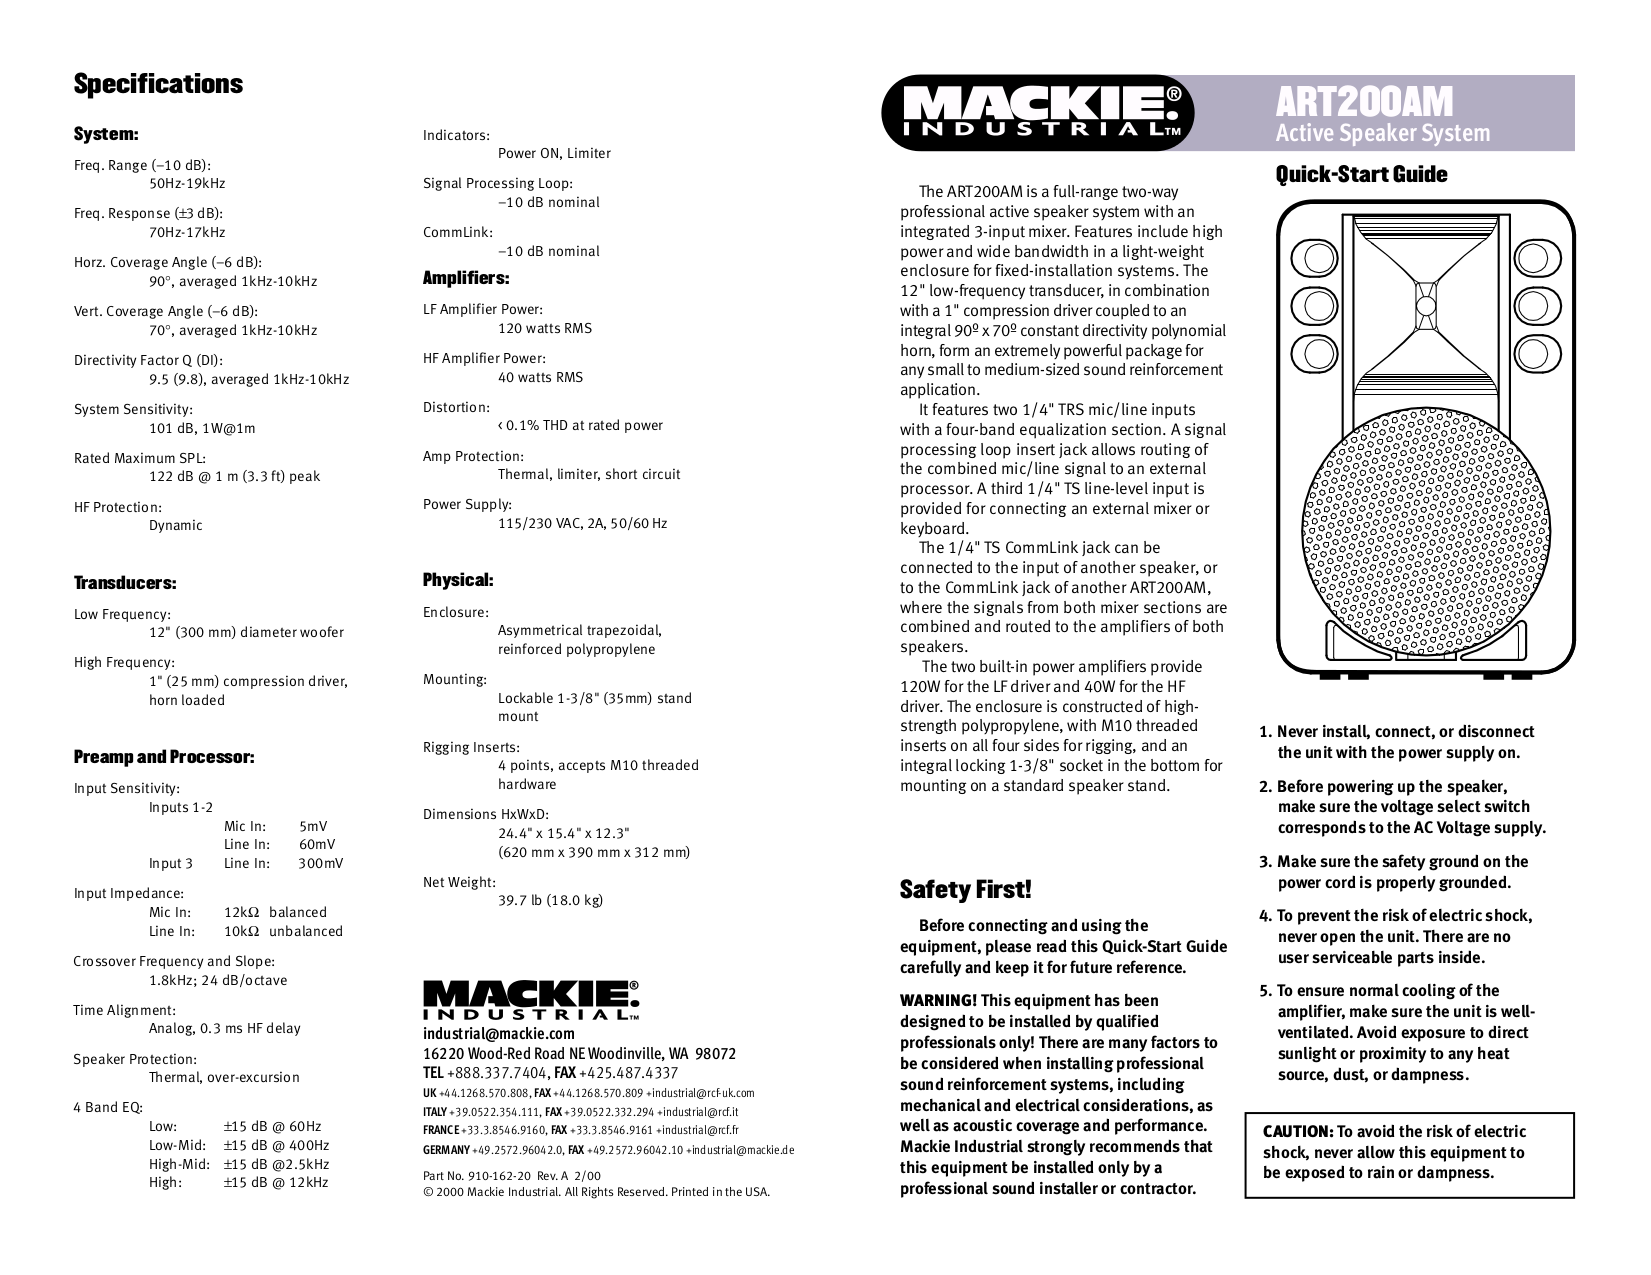 pdf for Mackie Speaker System Art Series ART200A manual